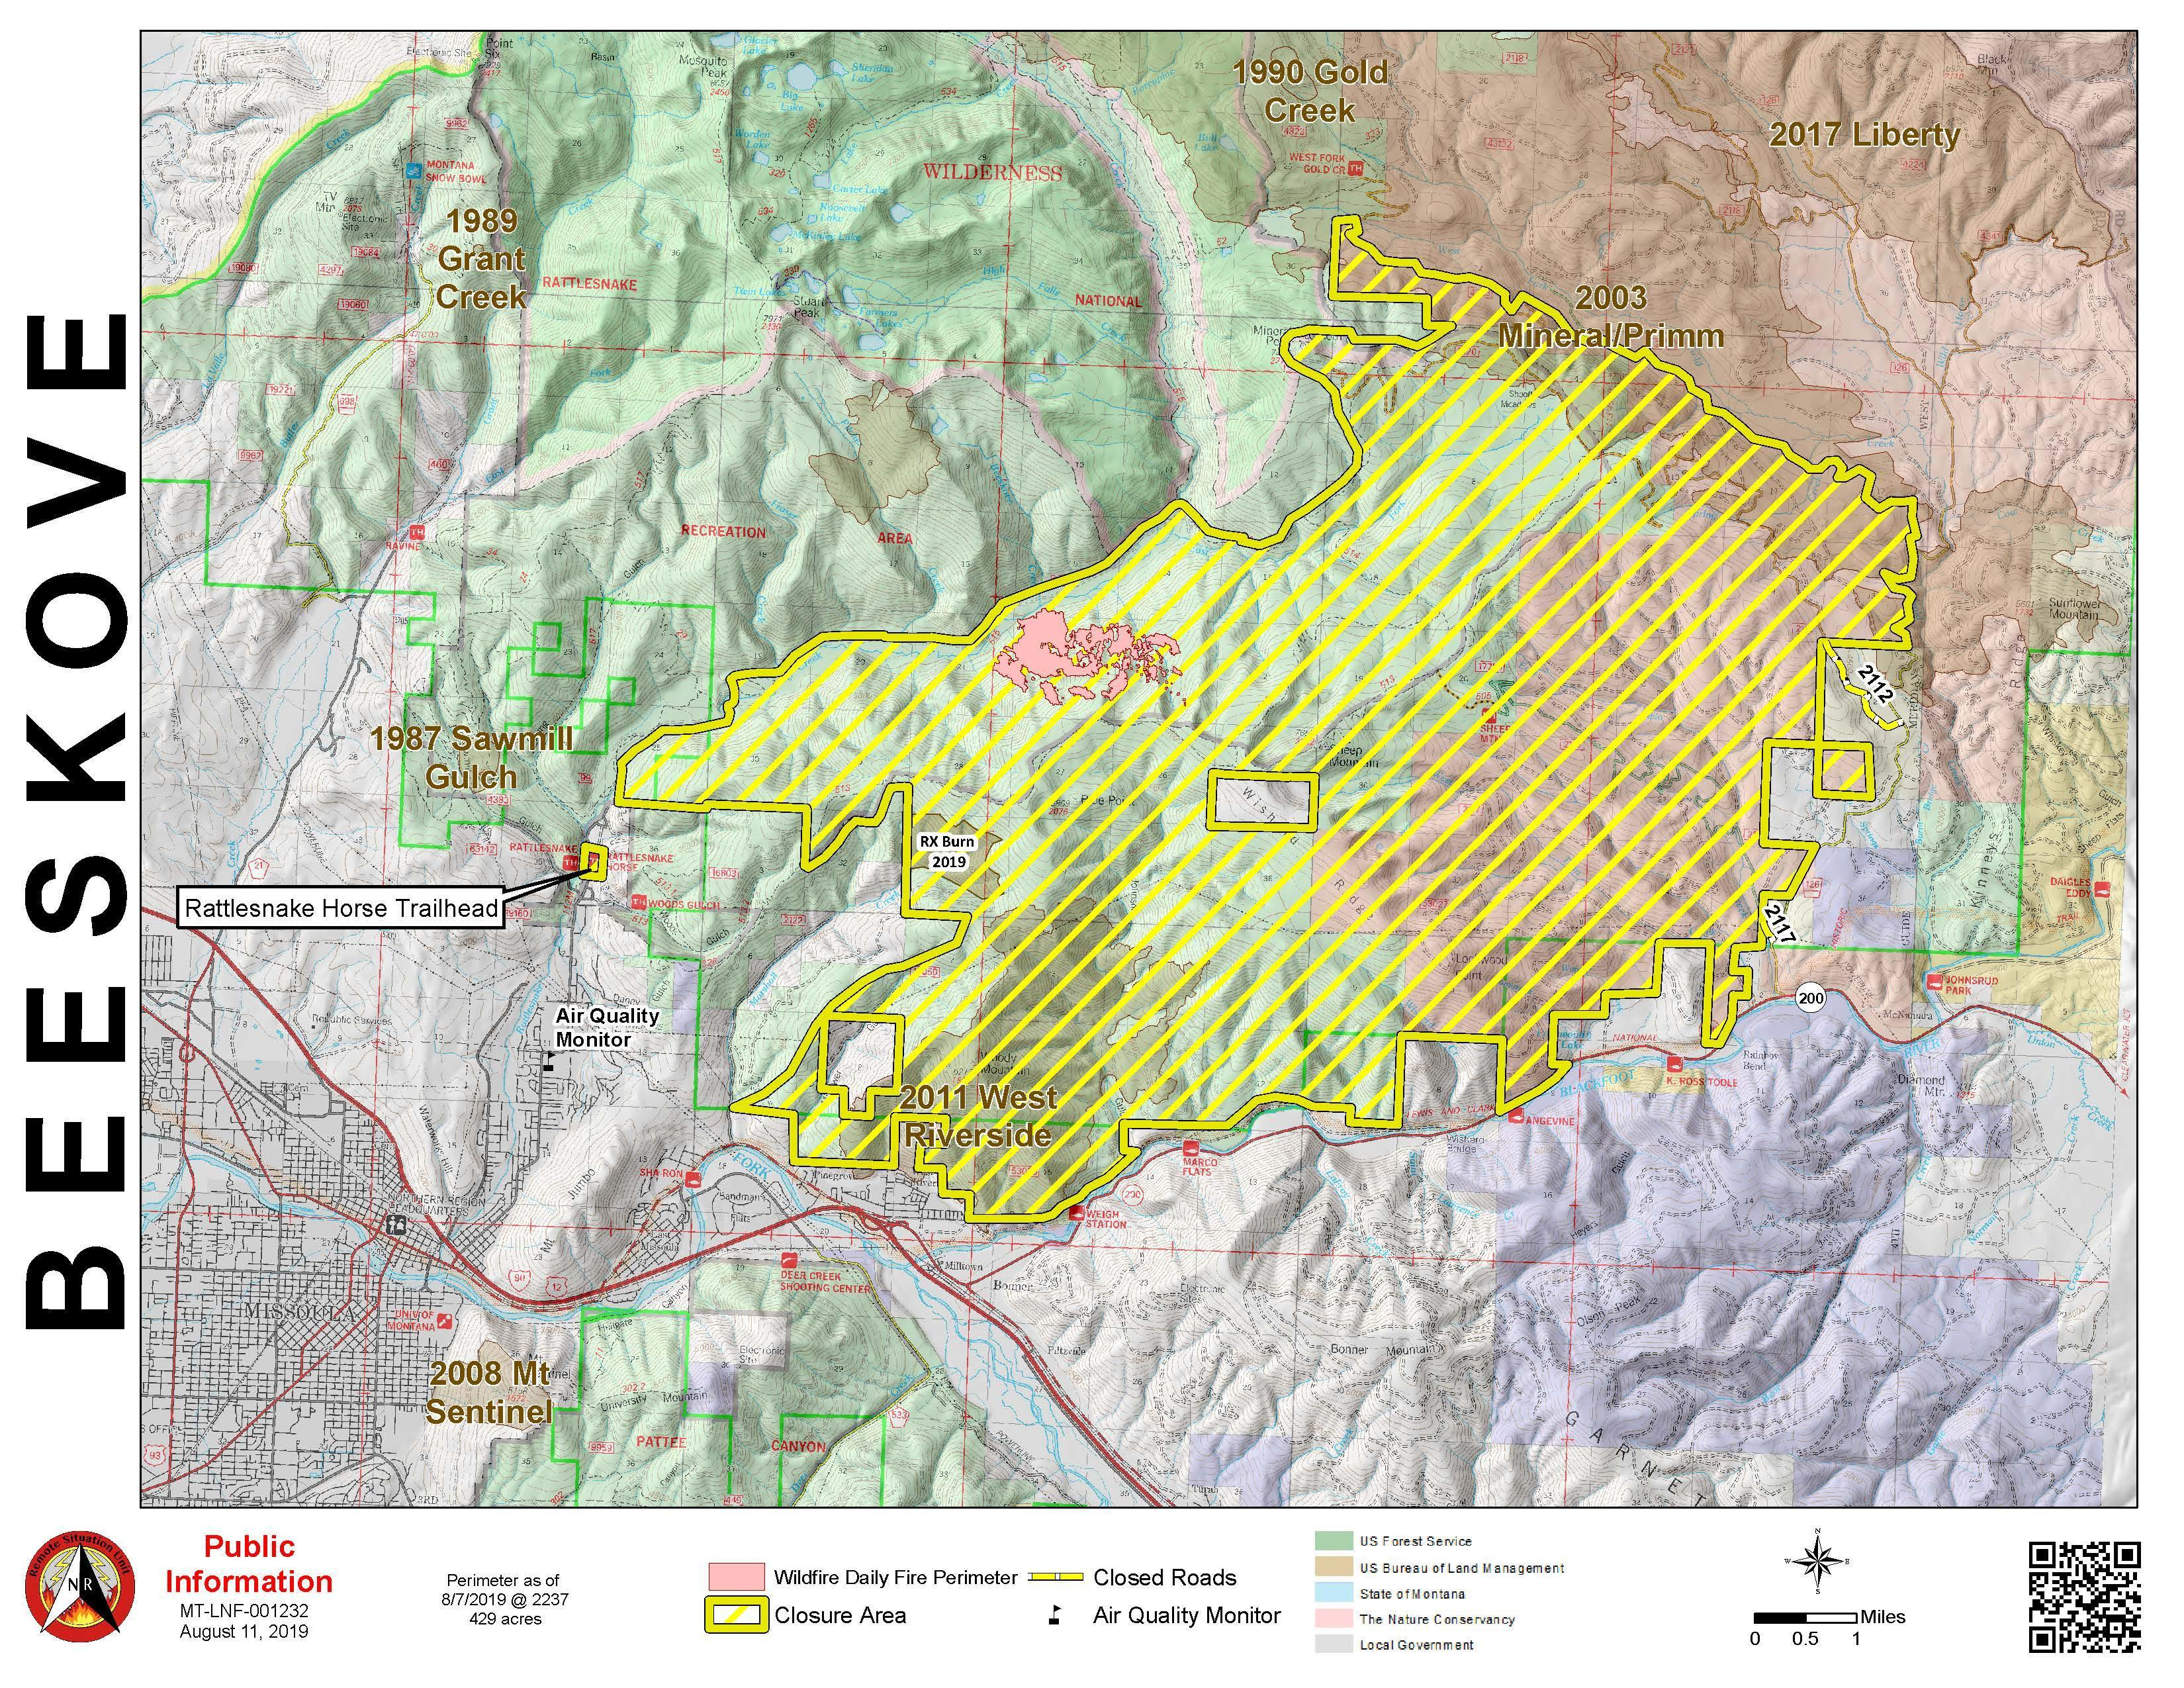 Map with pink polygon highlighting fire area and yellow polygon highlighting closure area